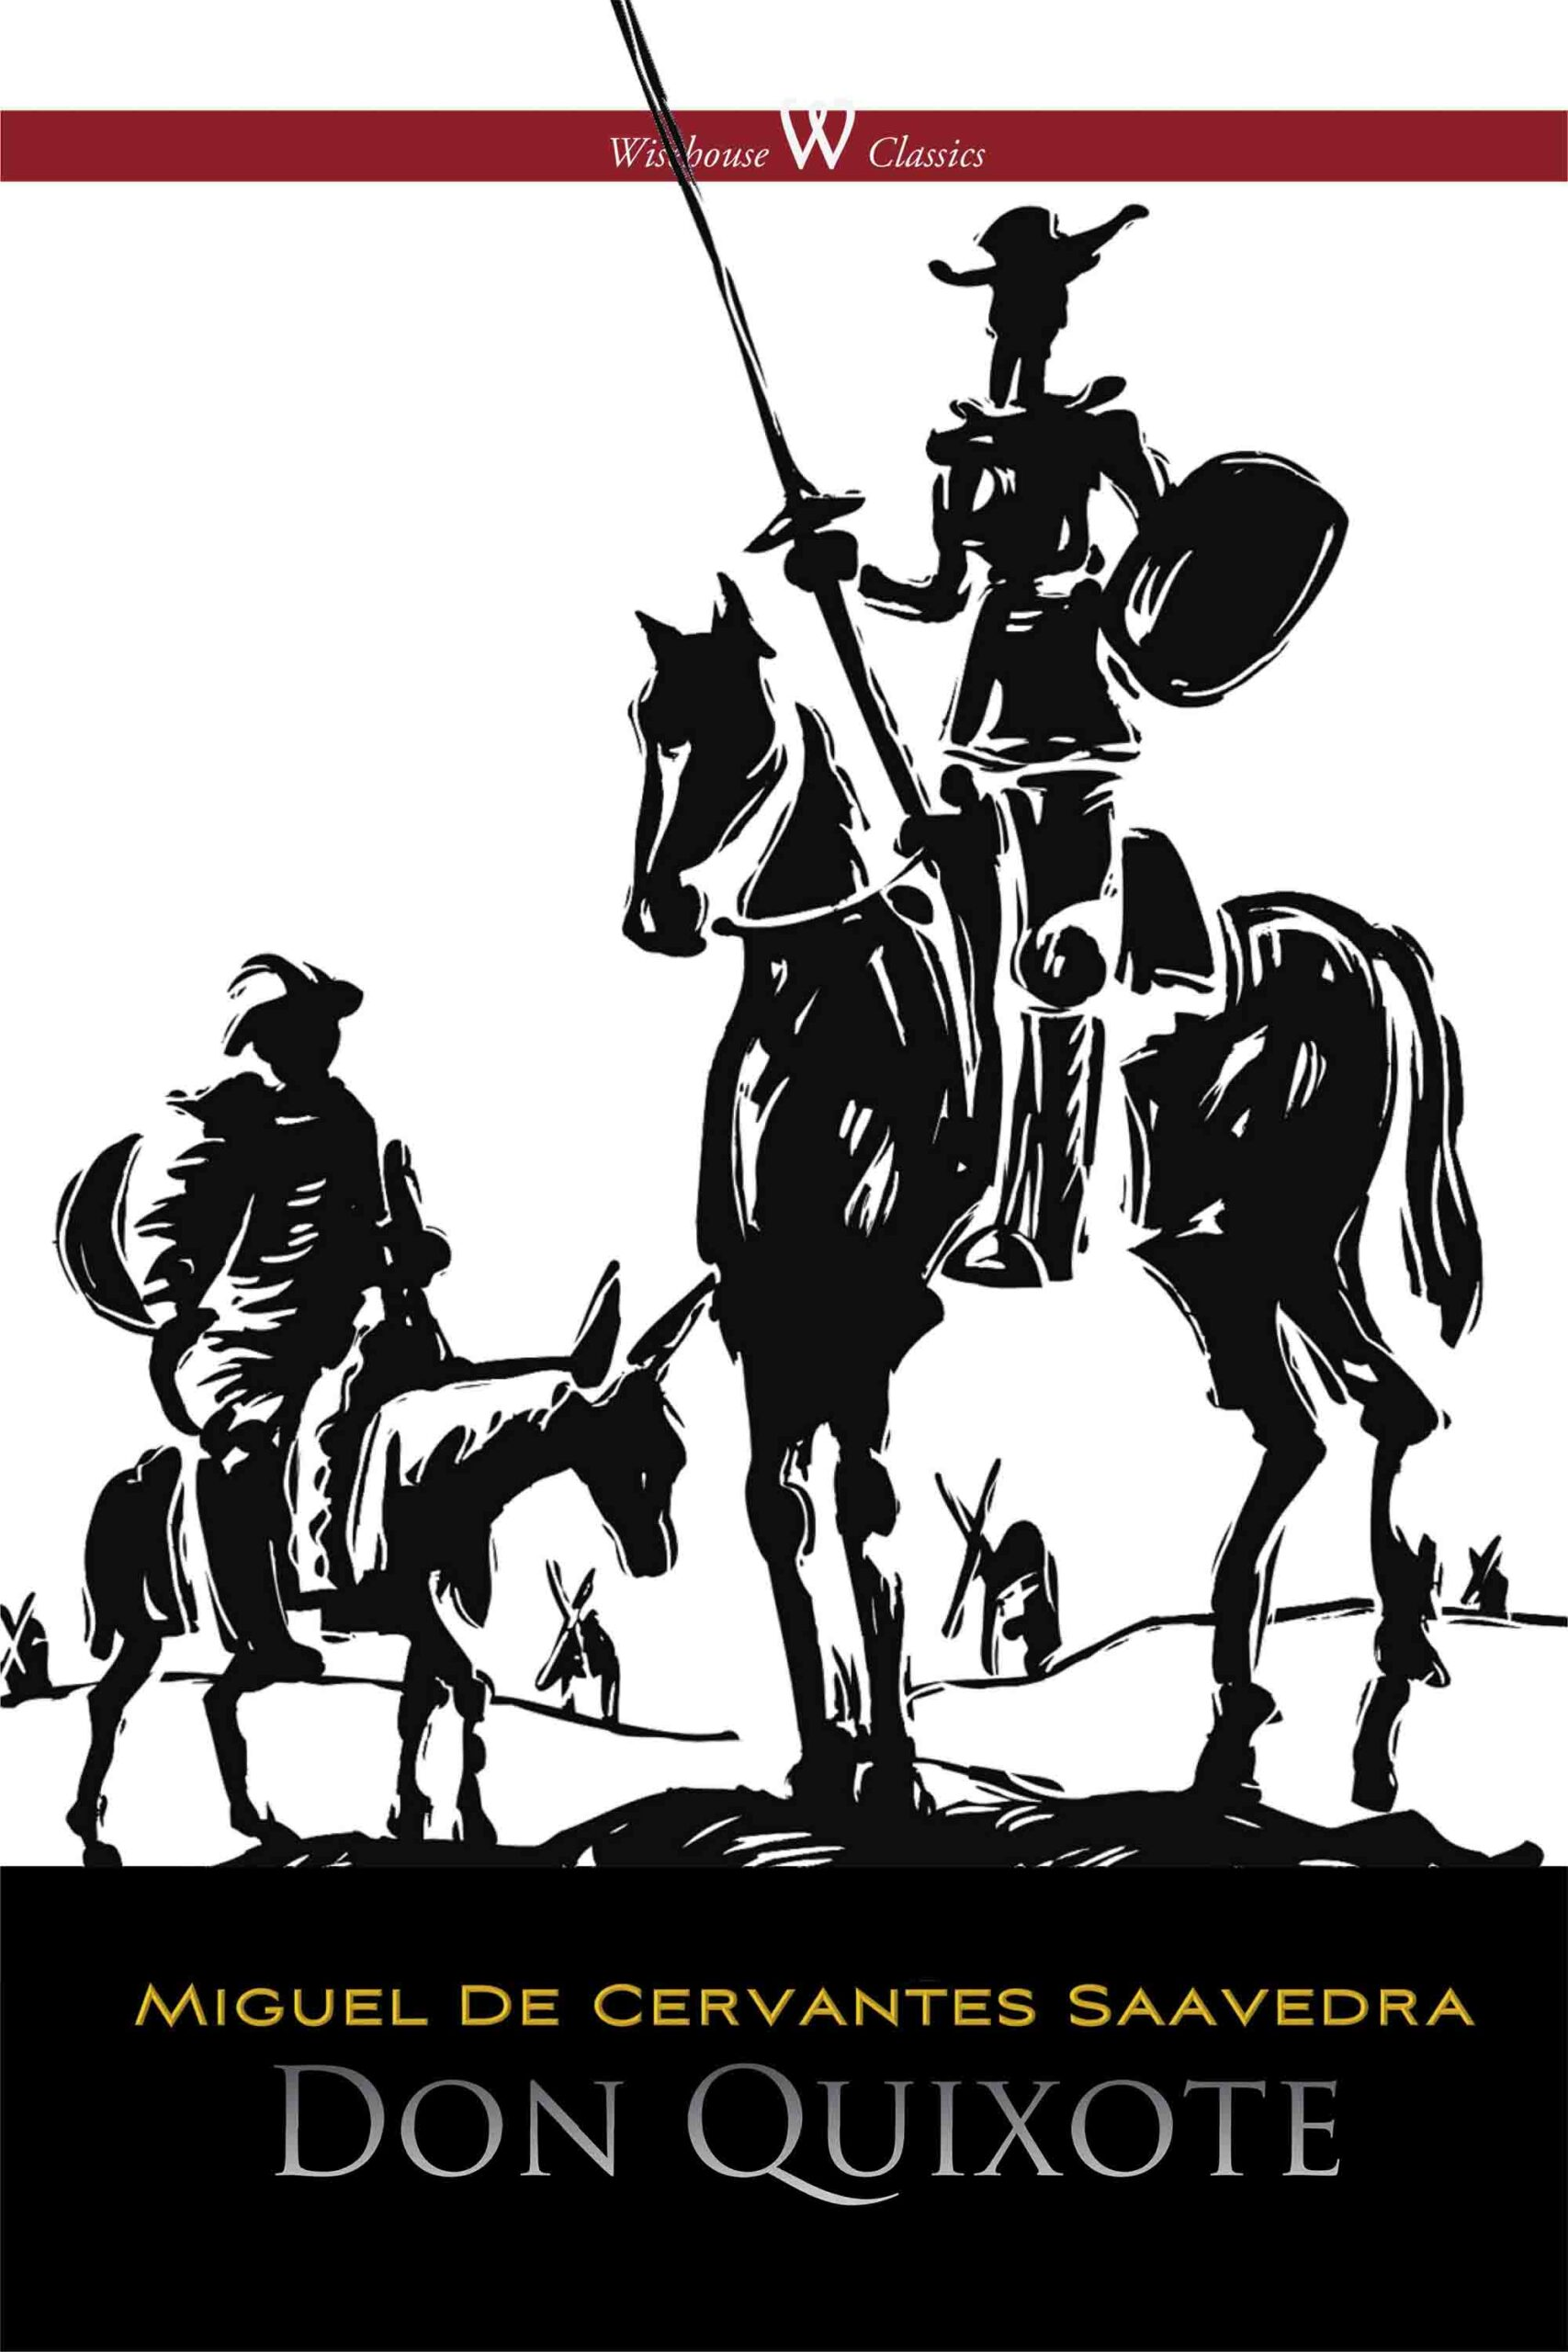 Don Quixote (Wisehouse Classics Edition, illustrated by Gustave Doré)